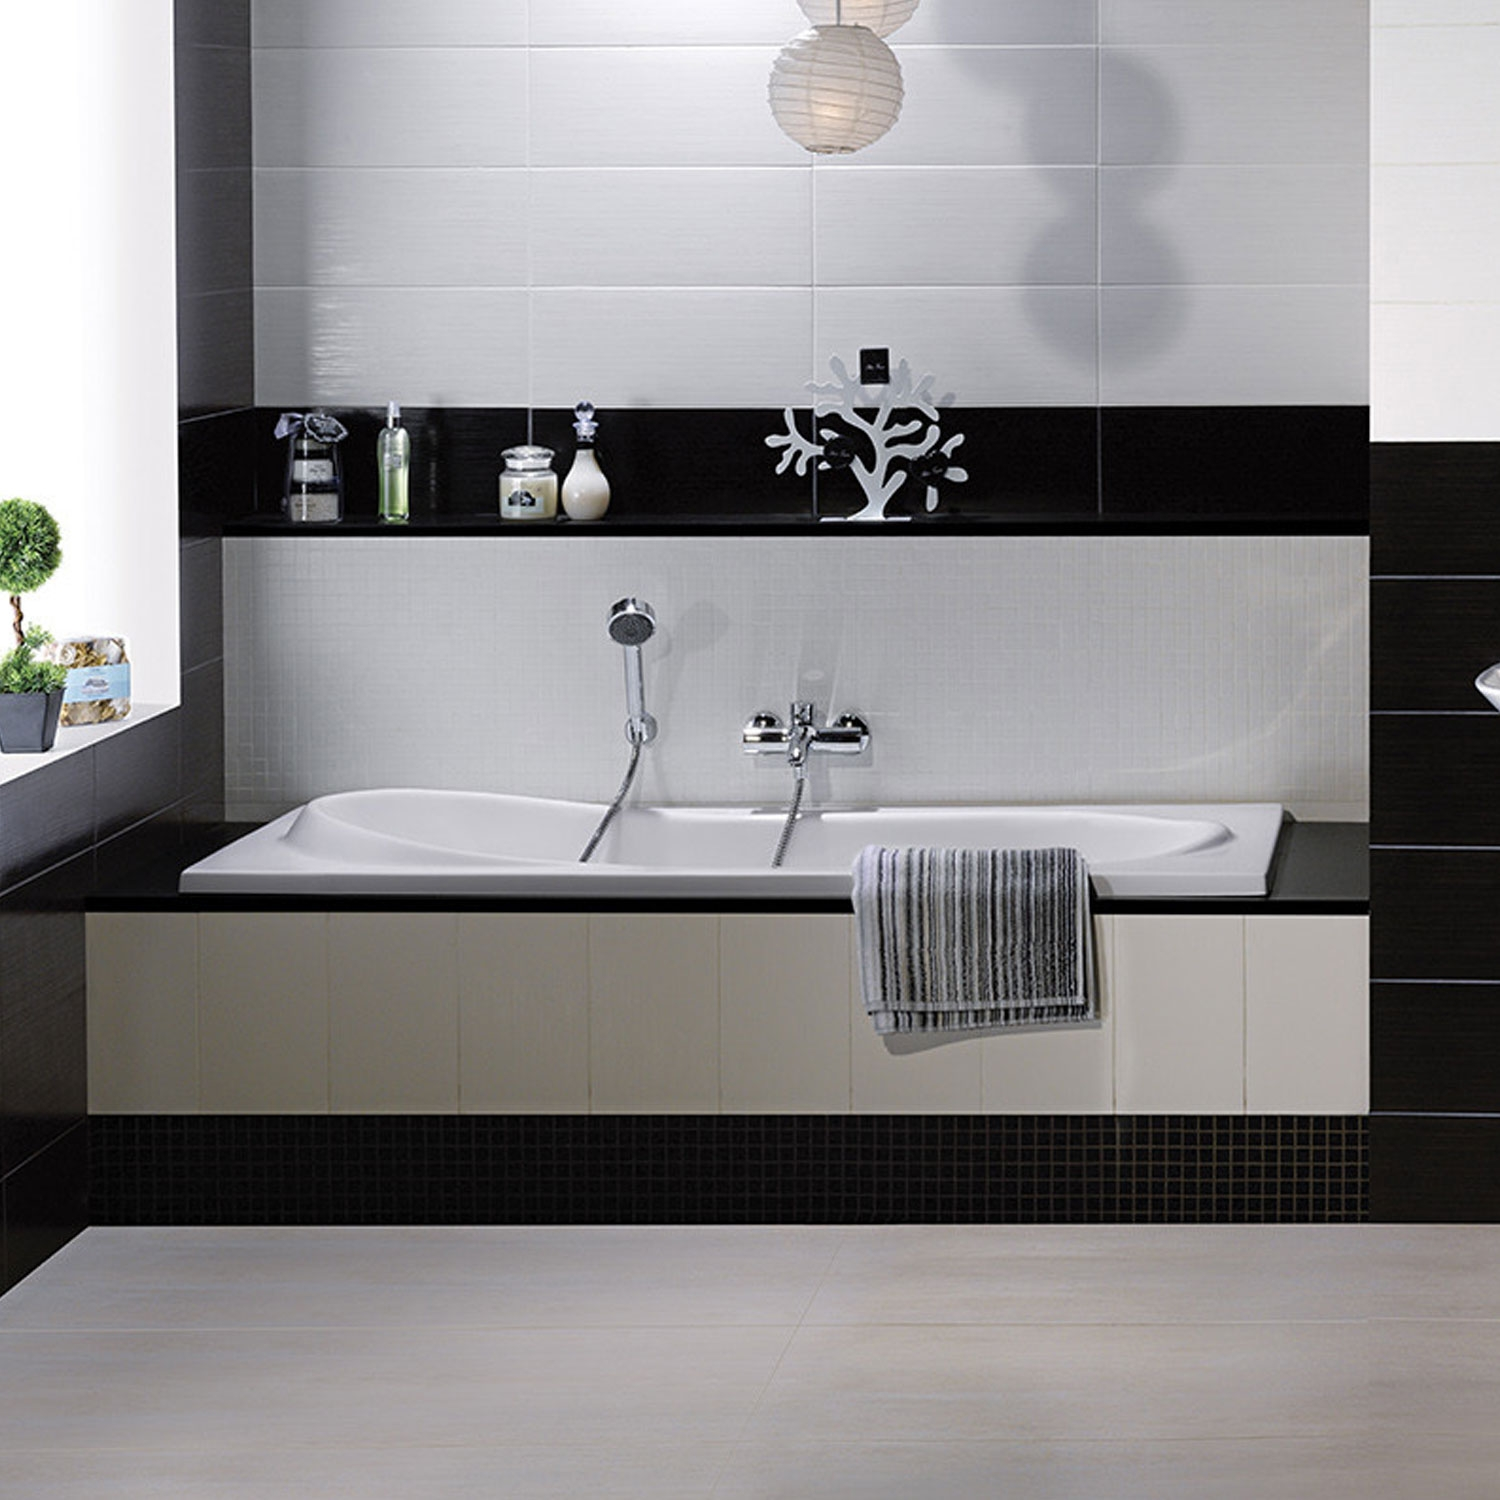 Verona Reserva Single Ended Rectangular Bath 1700mm x 800mm - 0 Tap Hole-0